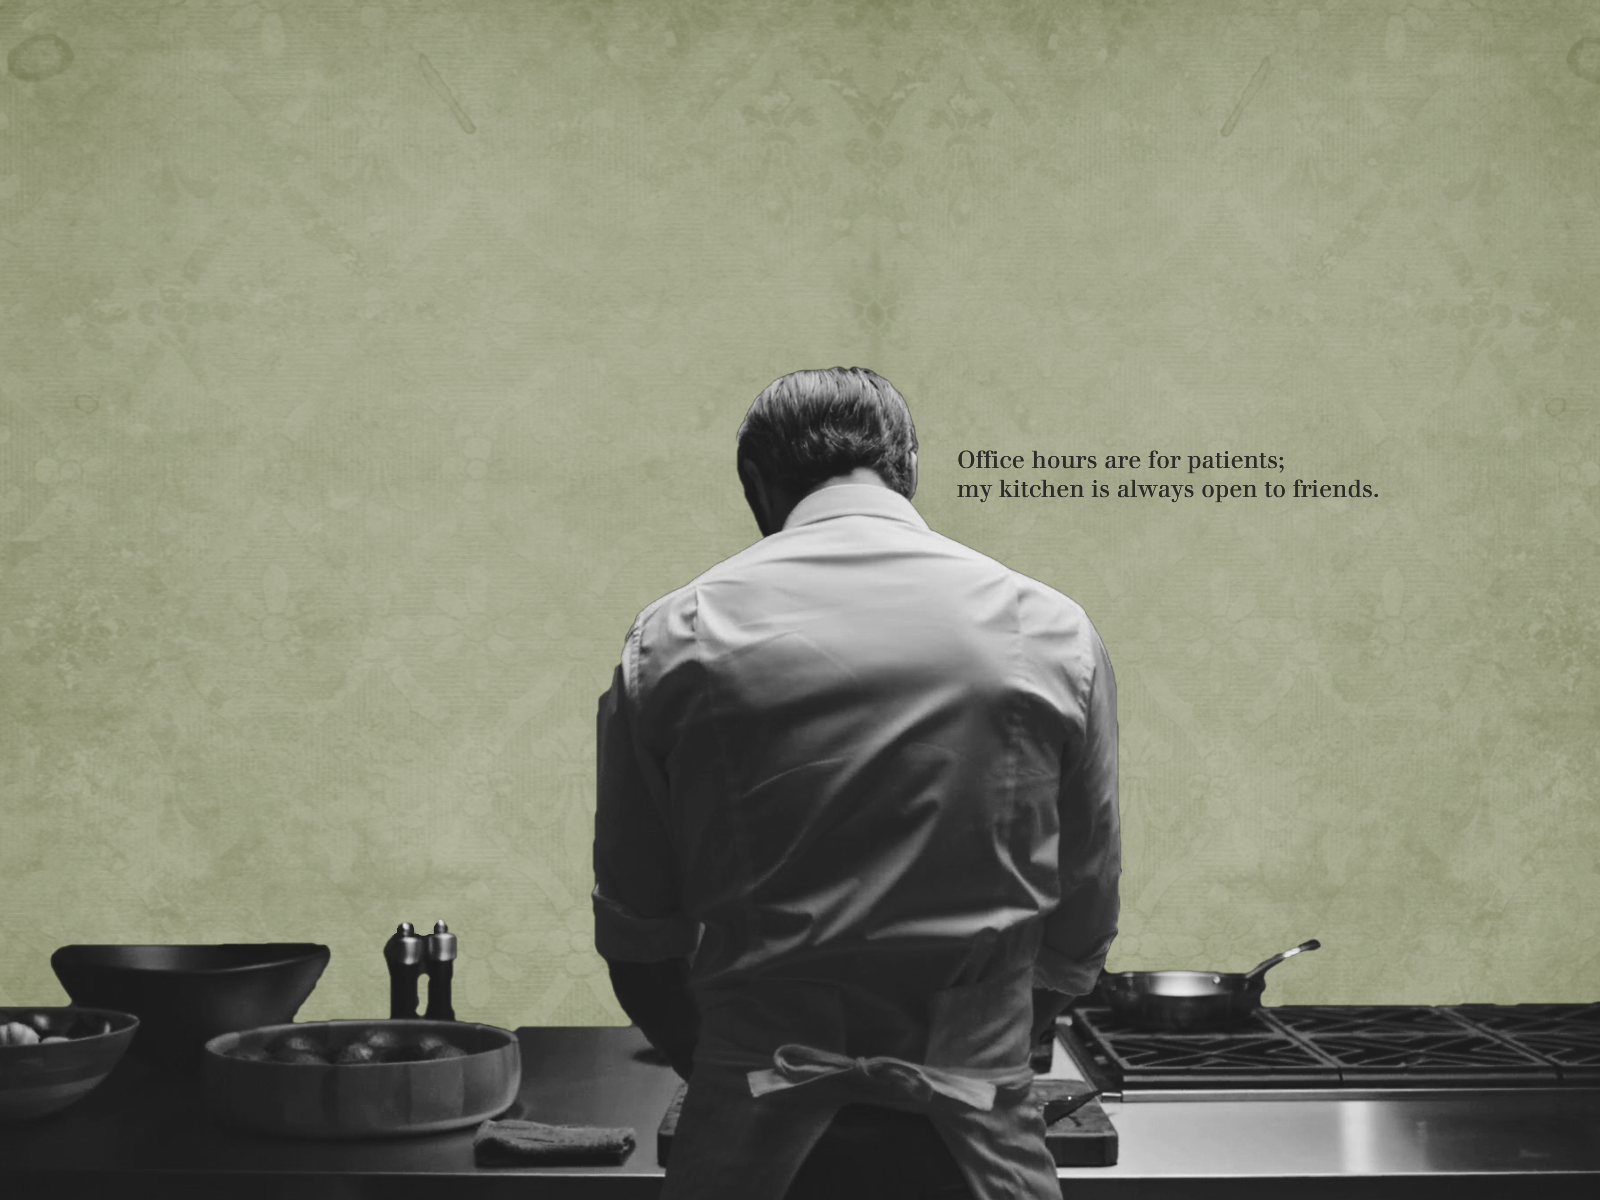 Hannibal Lecter   Hannibal TV Series Wallpaper 34399059 1600x1200